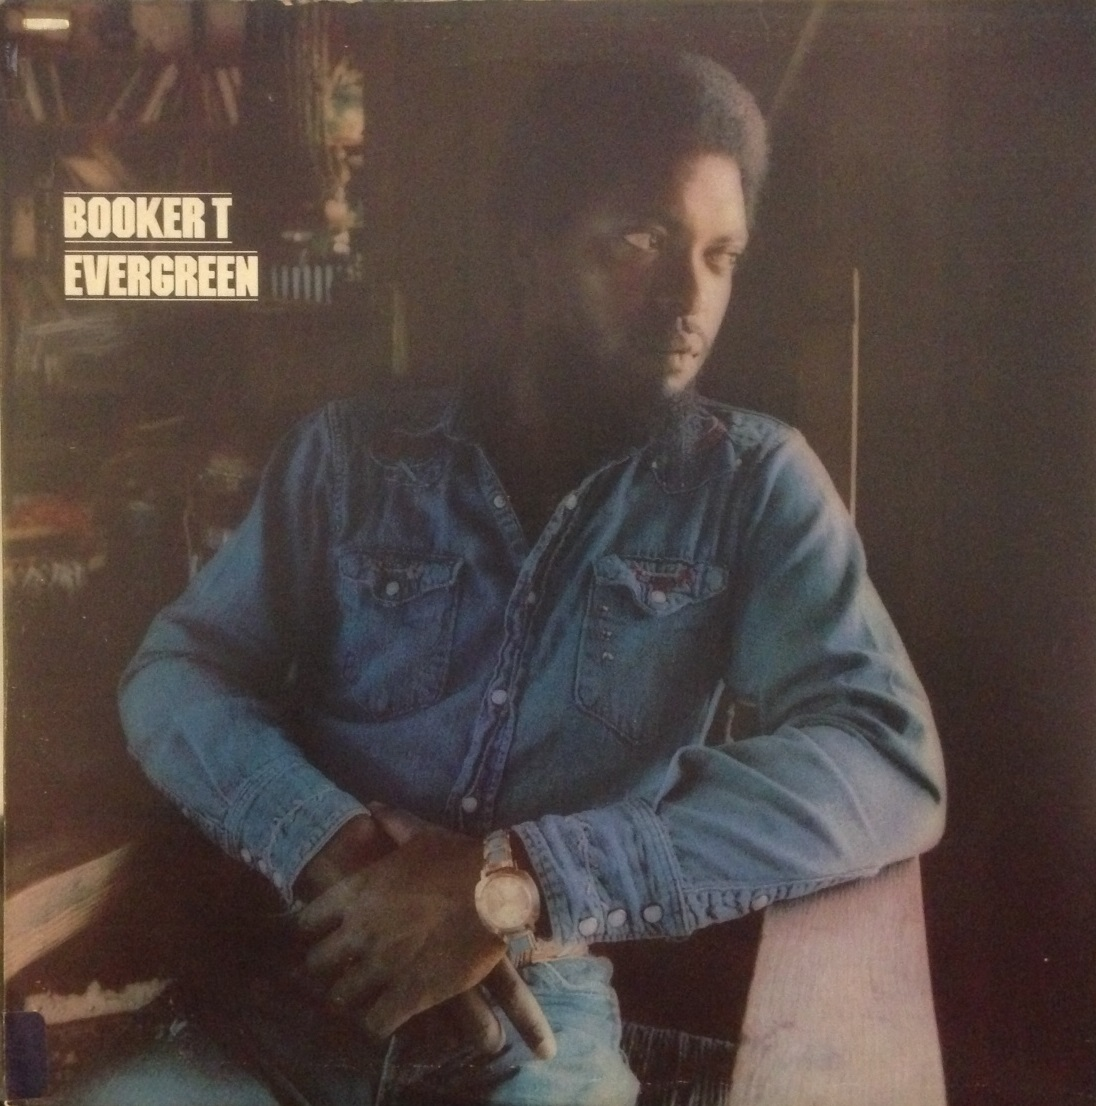 BOOKER T / EVERGREEN